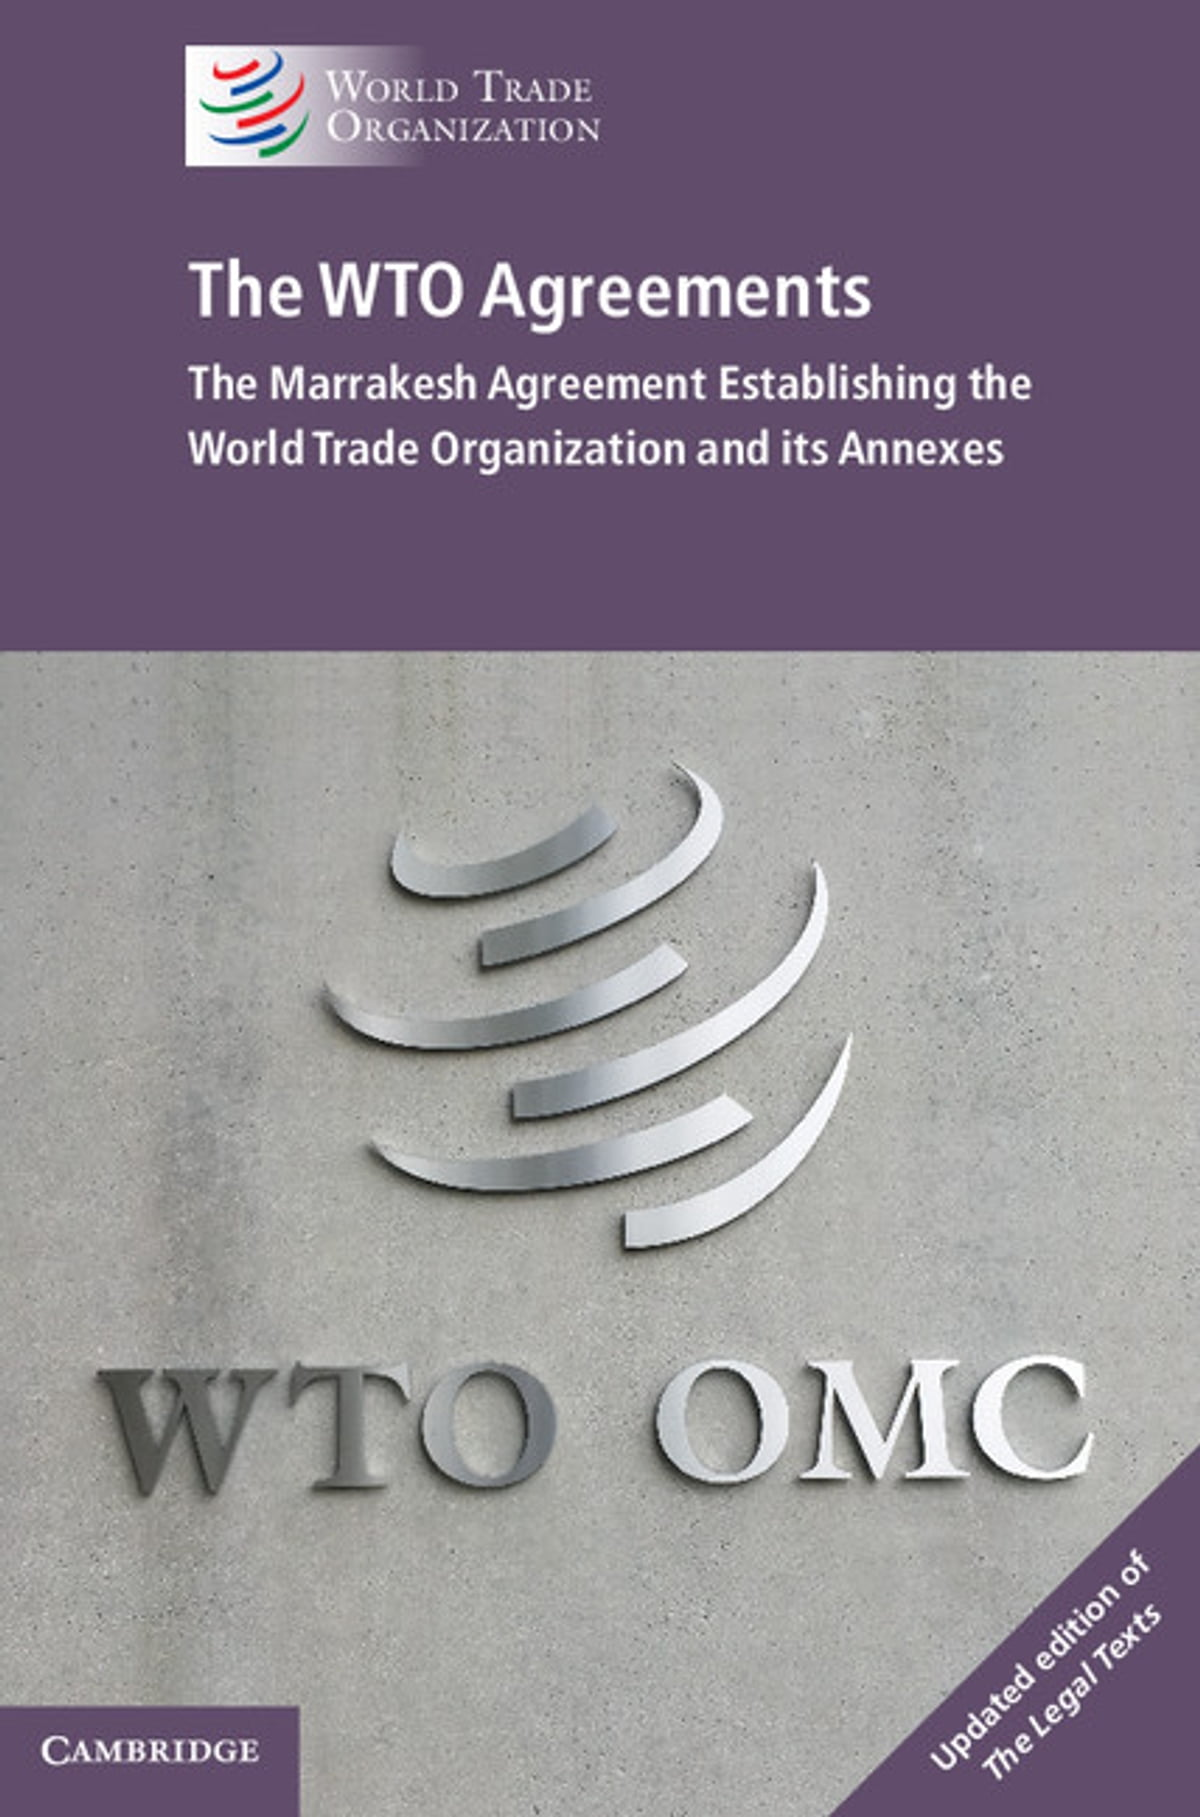 The Wto Agreements Ebook By World Trade Organization 9781108540193